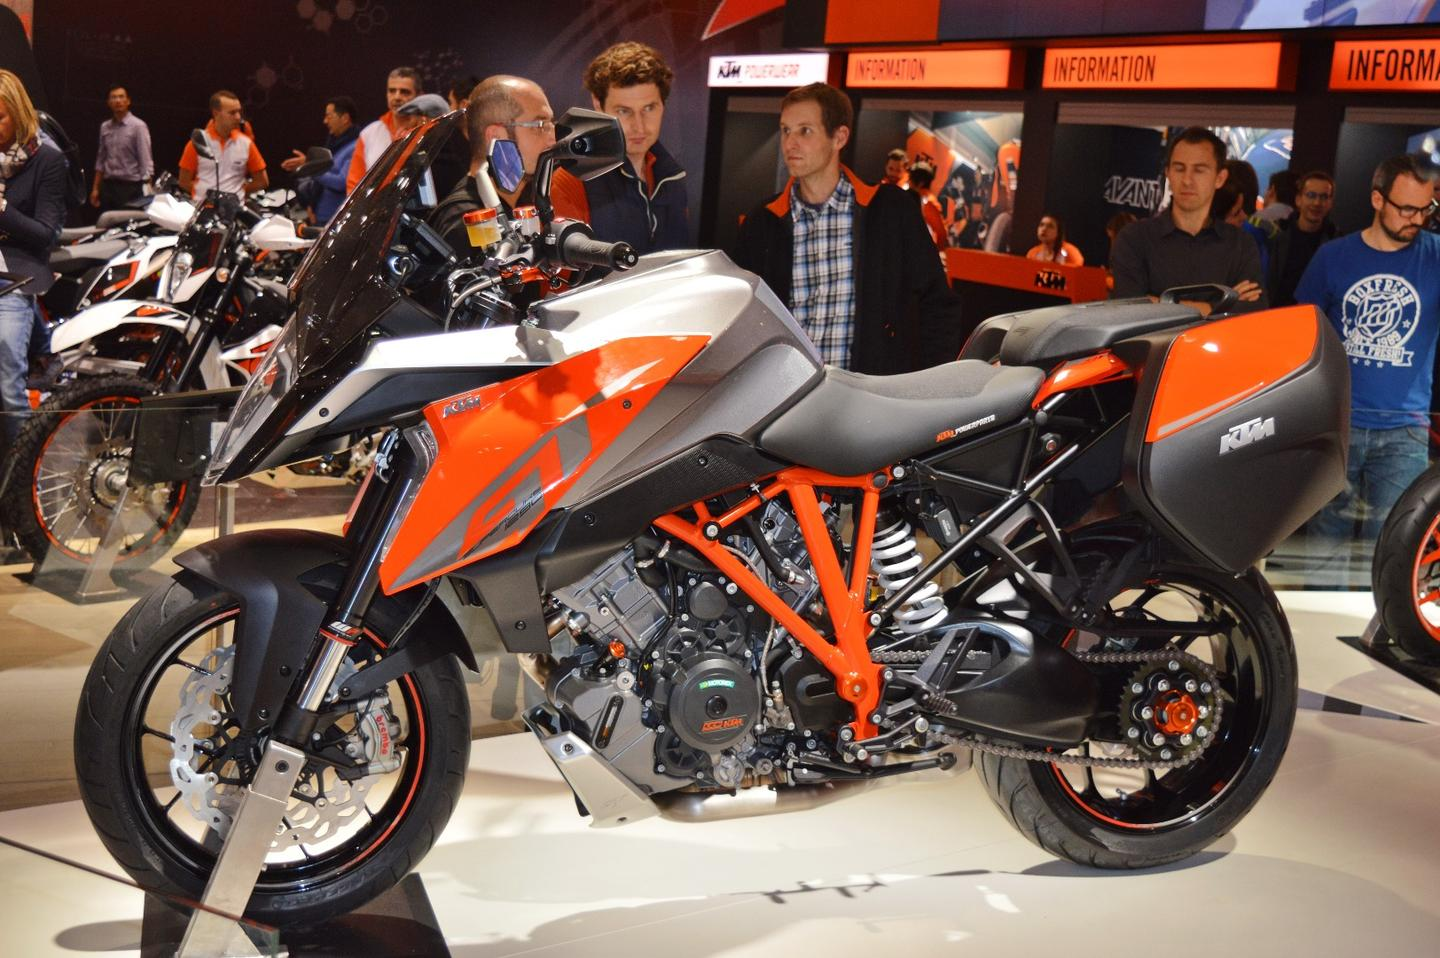 The KTM 1290 Super Duke GT redresses appropriately the Super Duke R to create the absolute sport touring bike